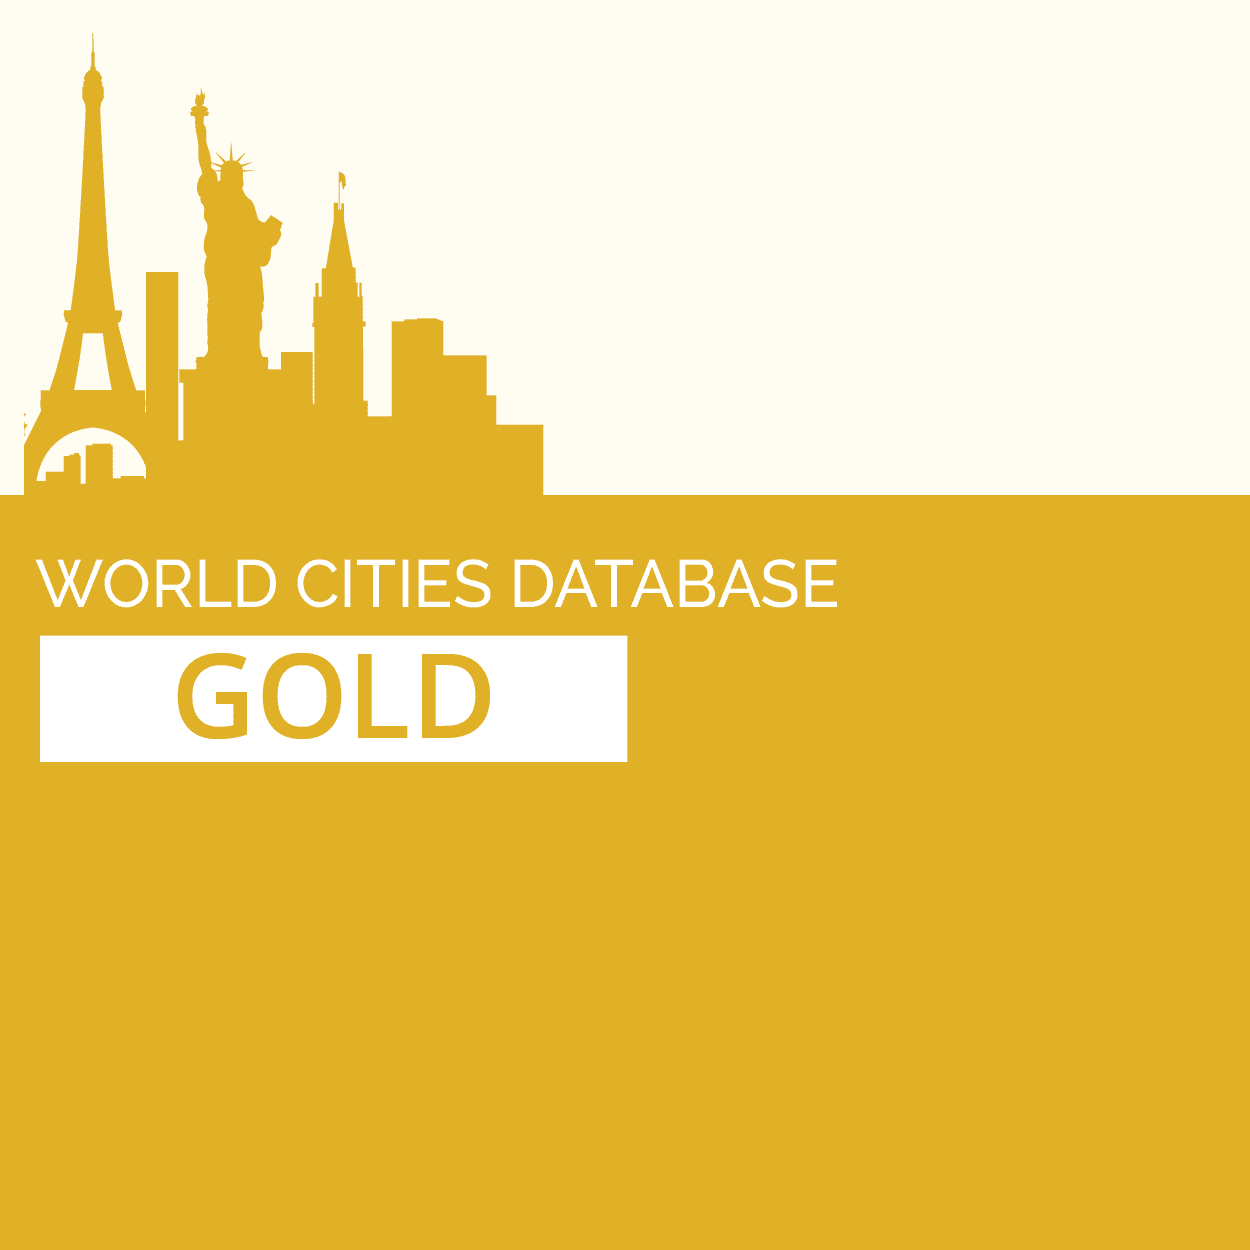 World Cities Database